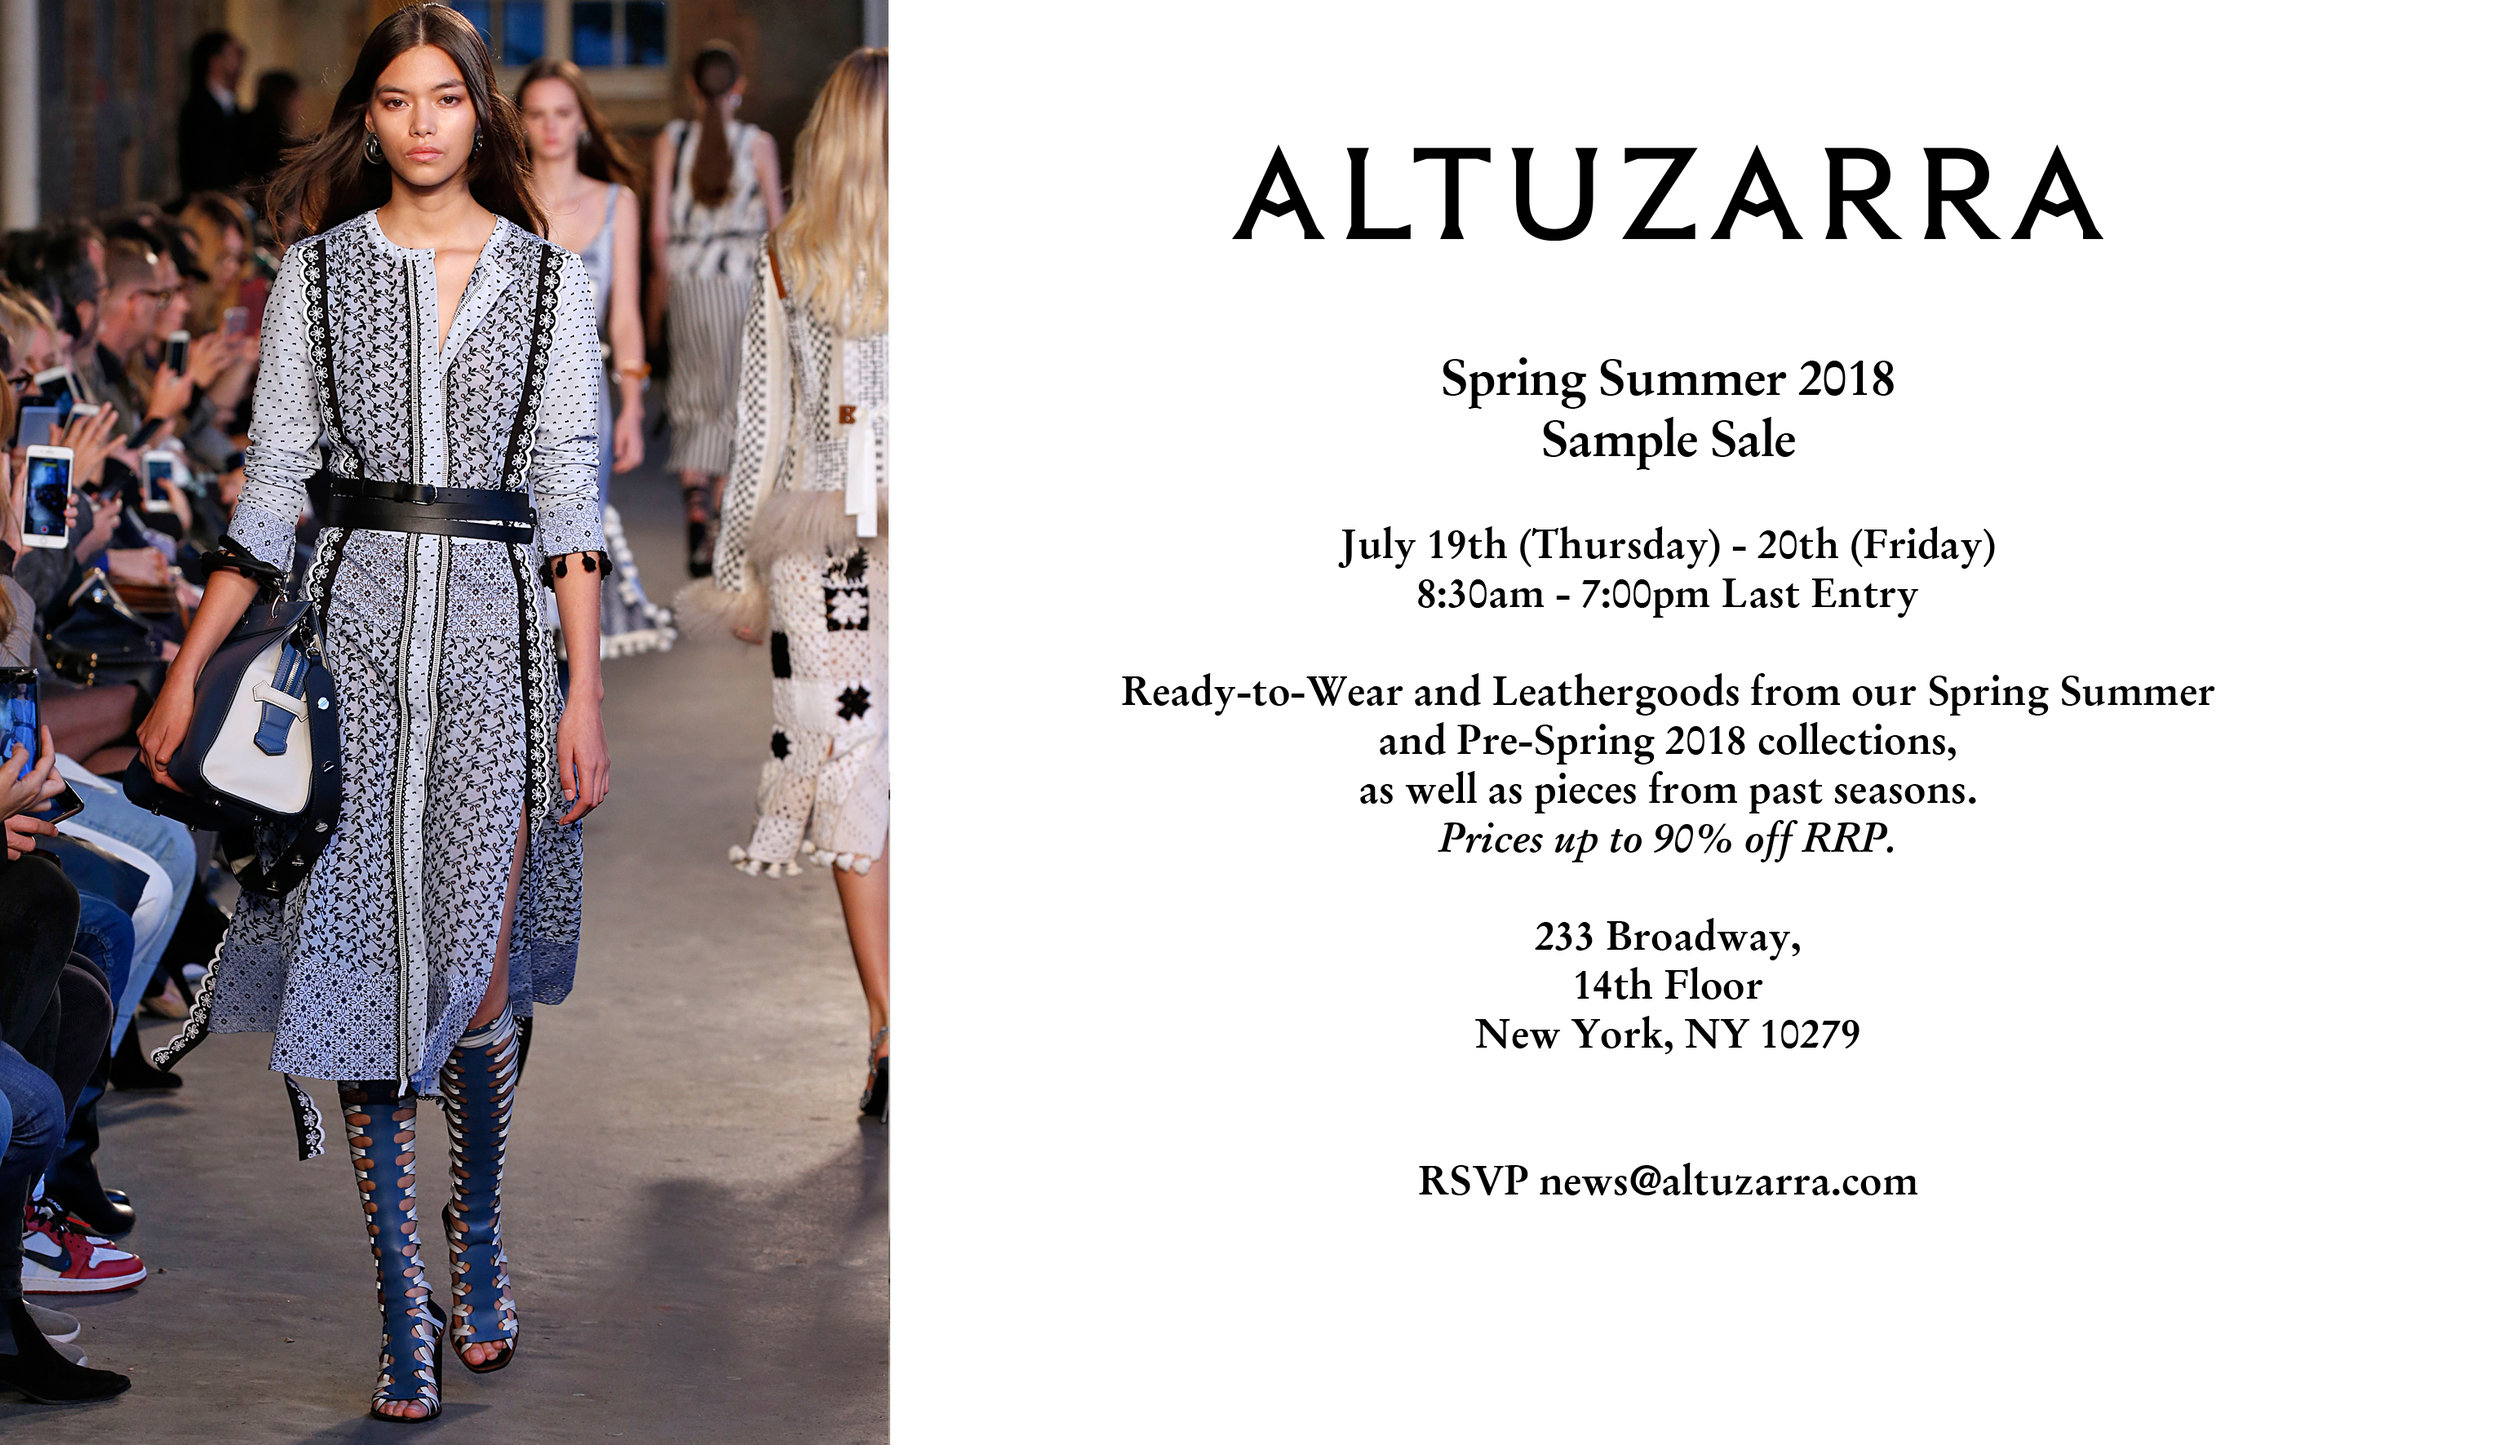 ALTUZARRA    Spring Summer 2018 Sample Sale   Thursday, July 19th - Friday, July 20th    8:30am - 7:00pm  Last Entry     Ready-To-Wear and Leathergoods from our Spring Summer and Pre-Spring 2018 collections, as well as pieces from past seasons.      Prices up to 90% off RRP.     233 Broadway,      14th Floor      New York, NY 10279        RSVP:  news@altuzarra.com